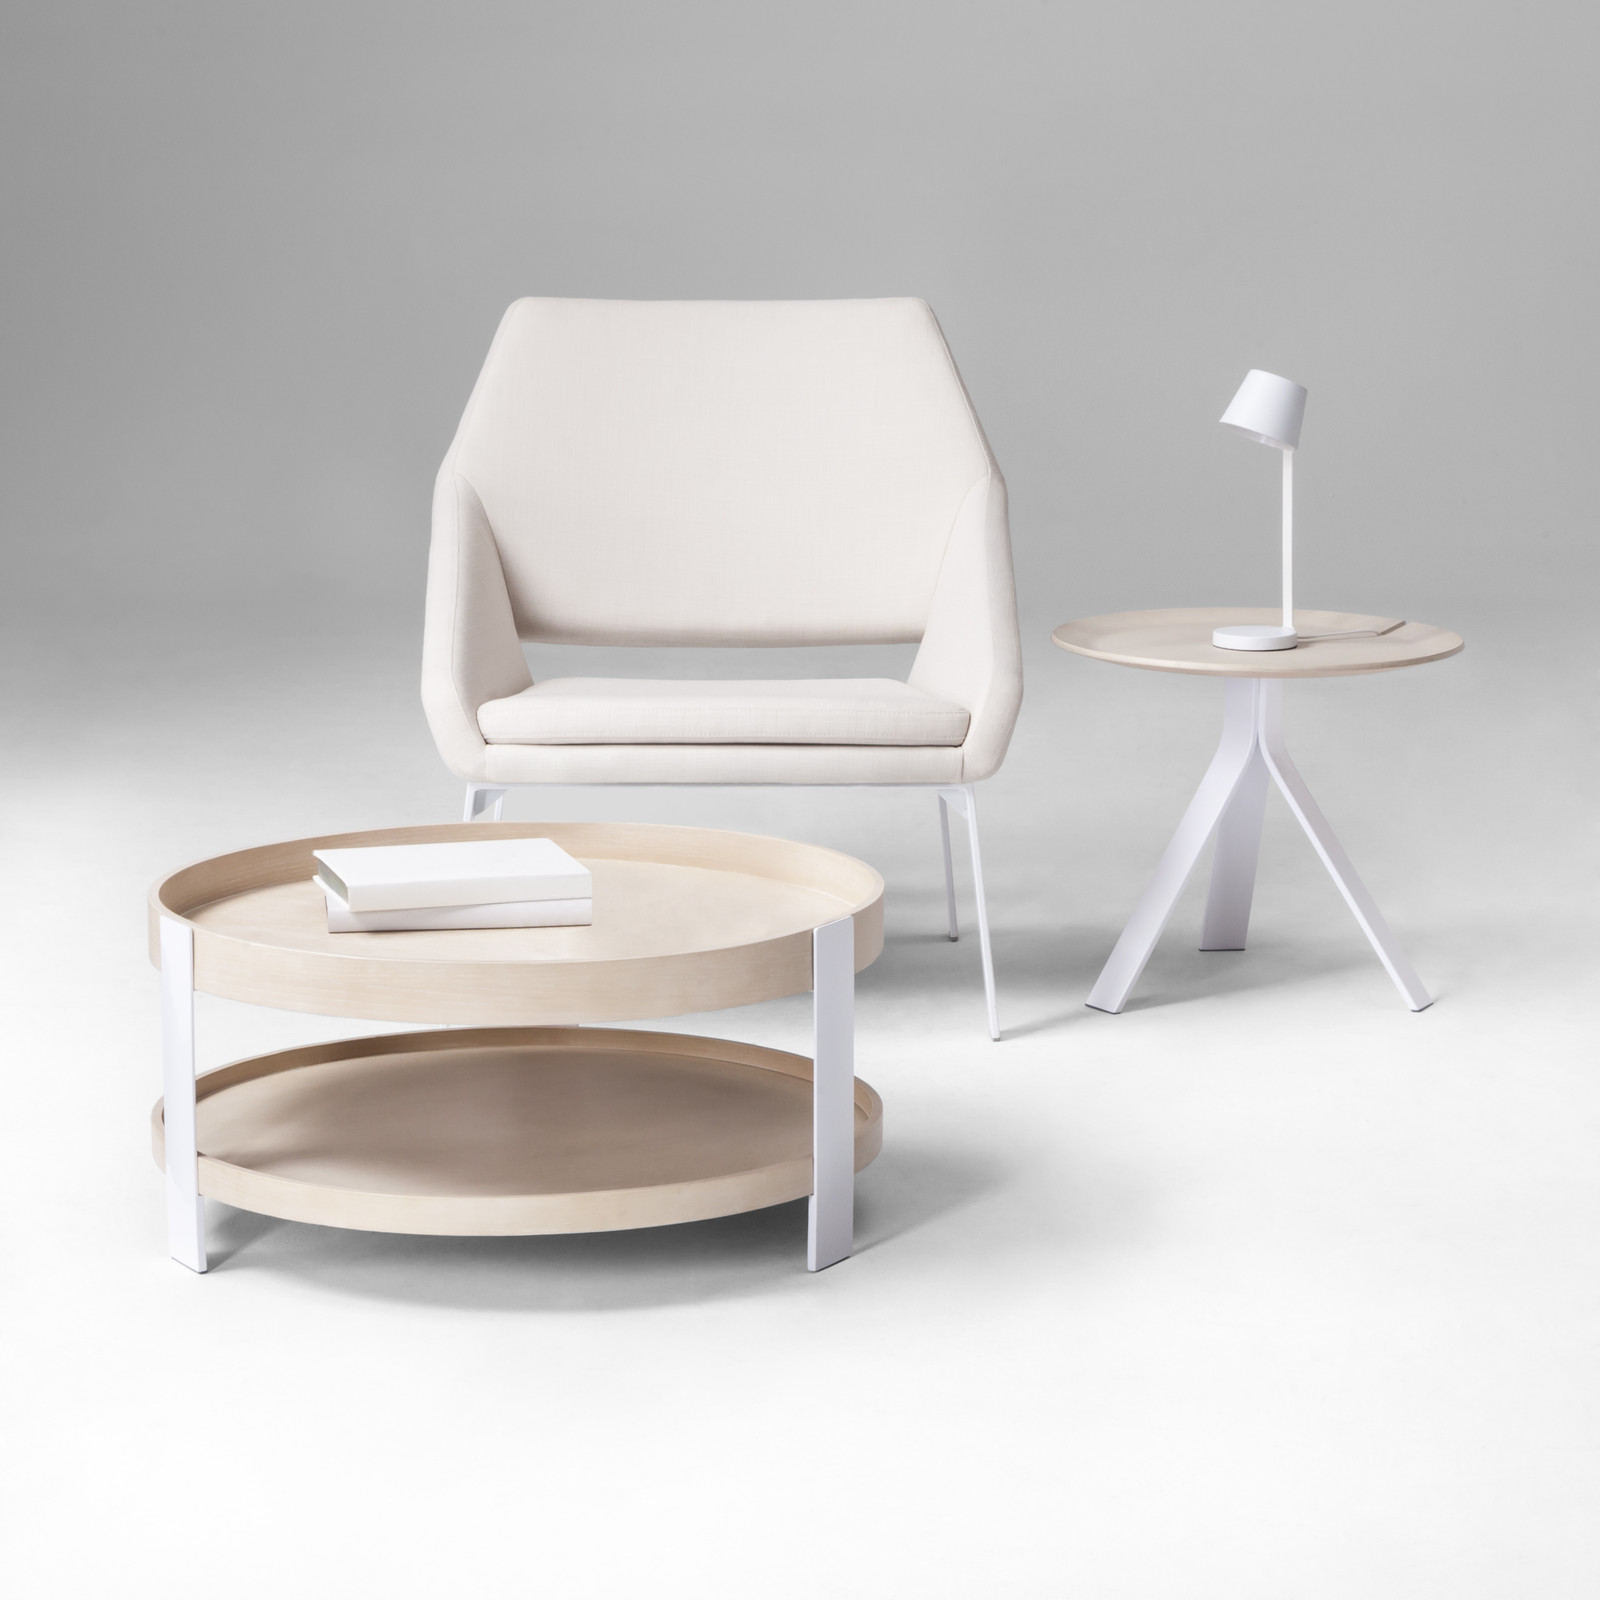 Dwell for Target collection